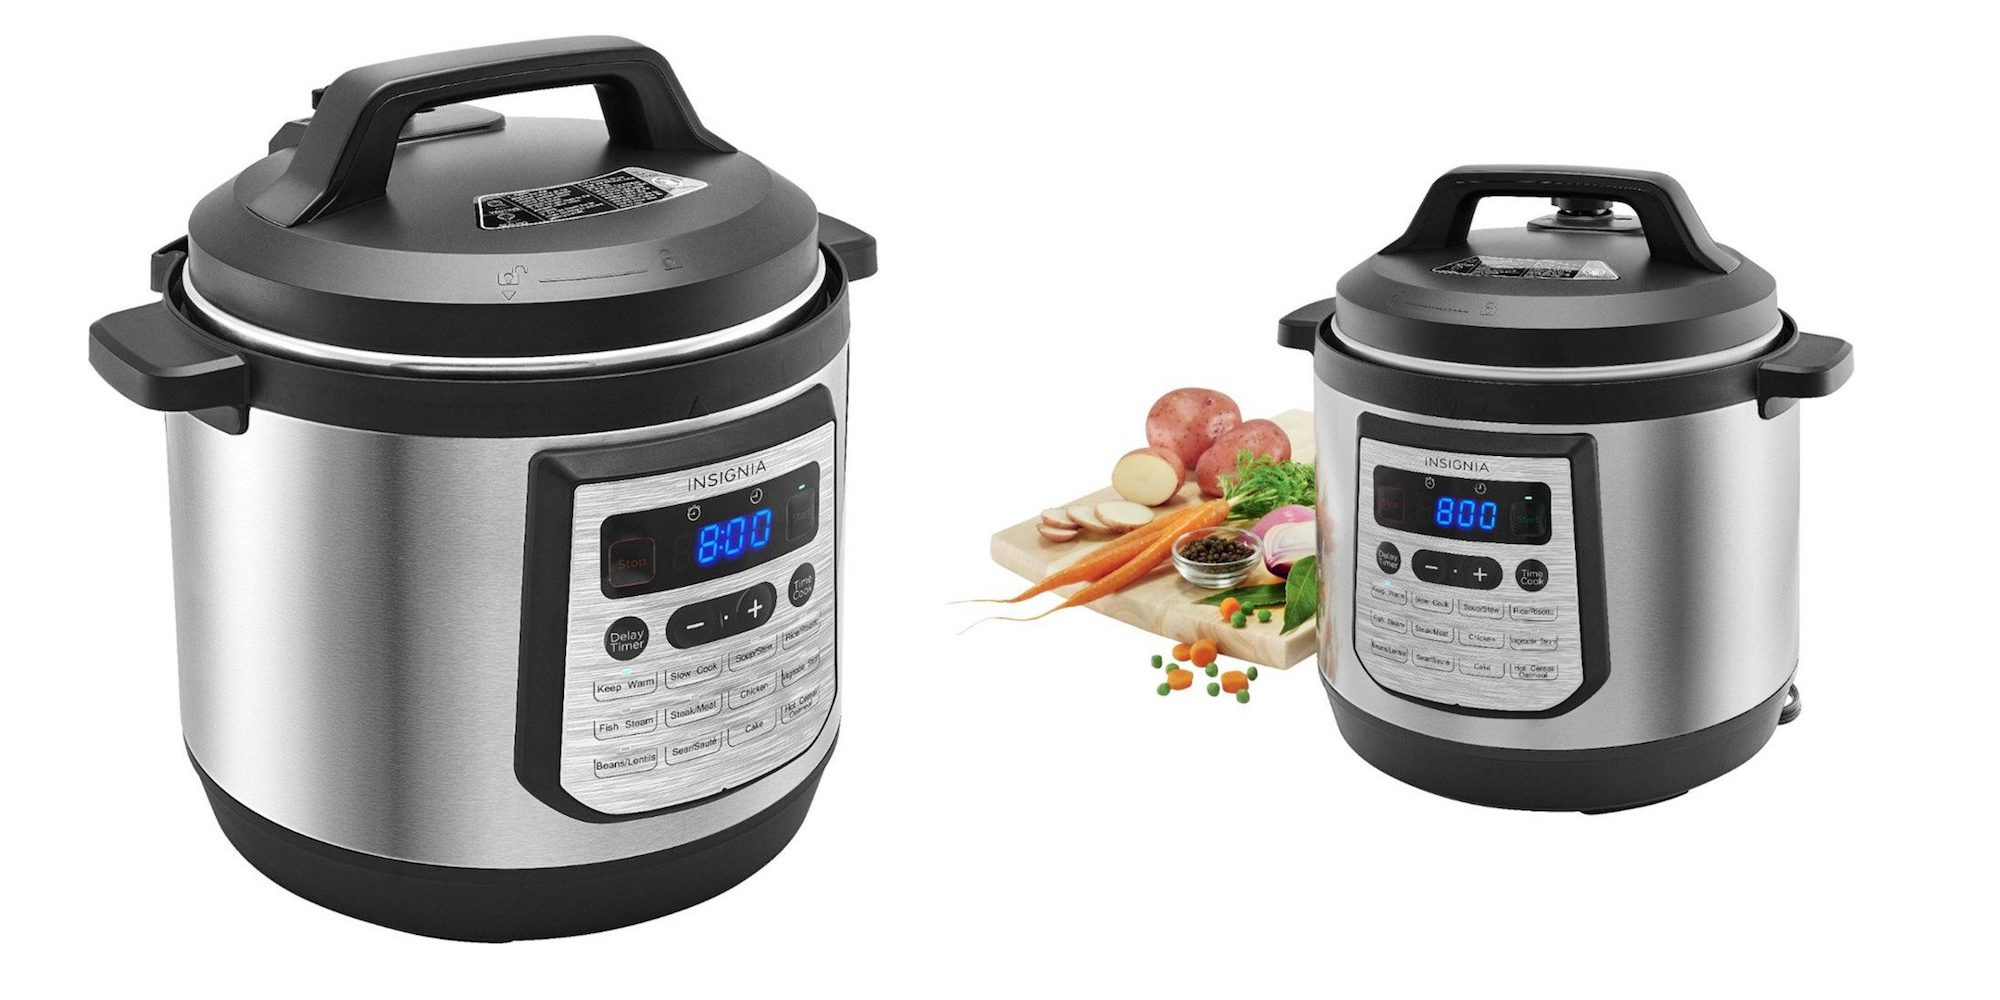 Insignia's big boy 8-quart Multi-Function Pressure Cooker is just $40 right now (Reg. $78+)